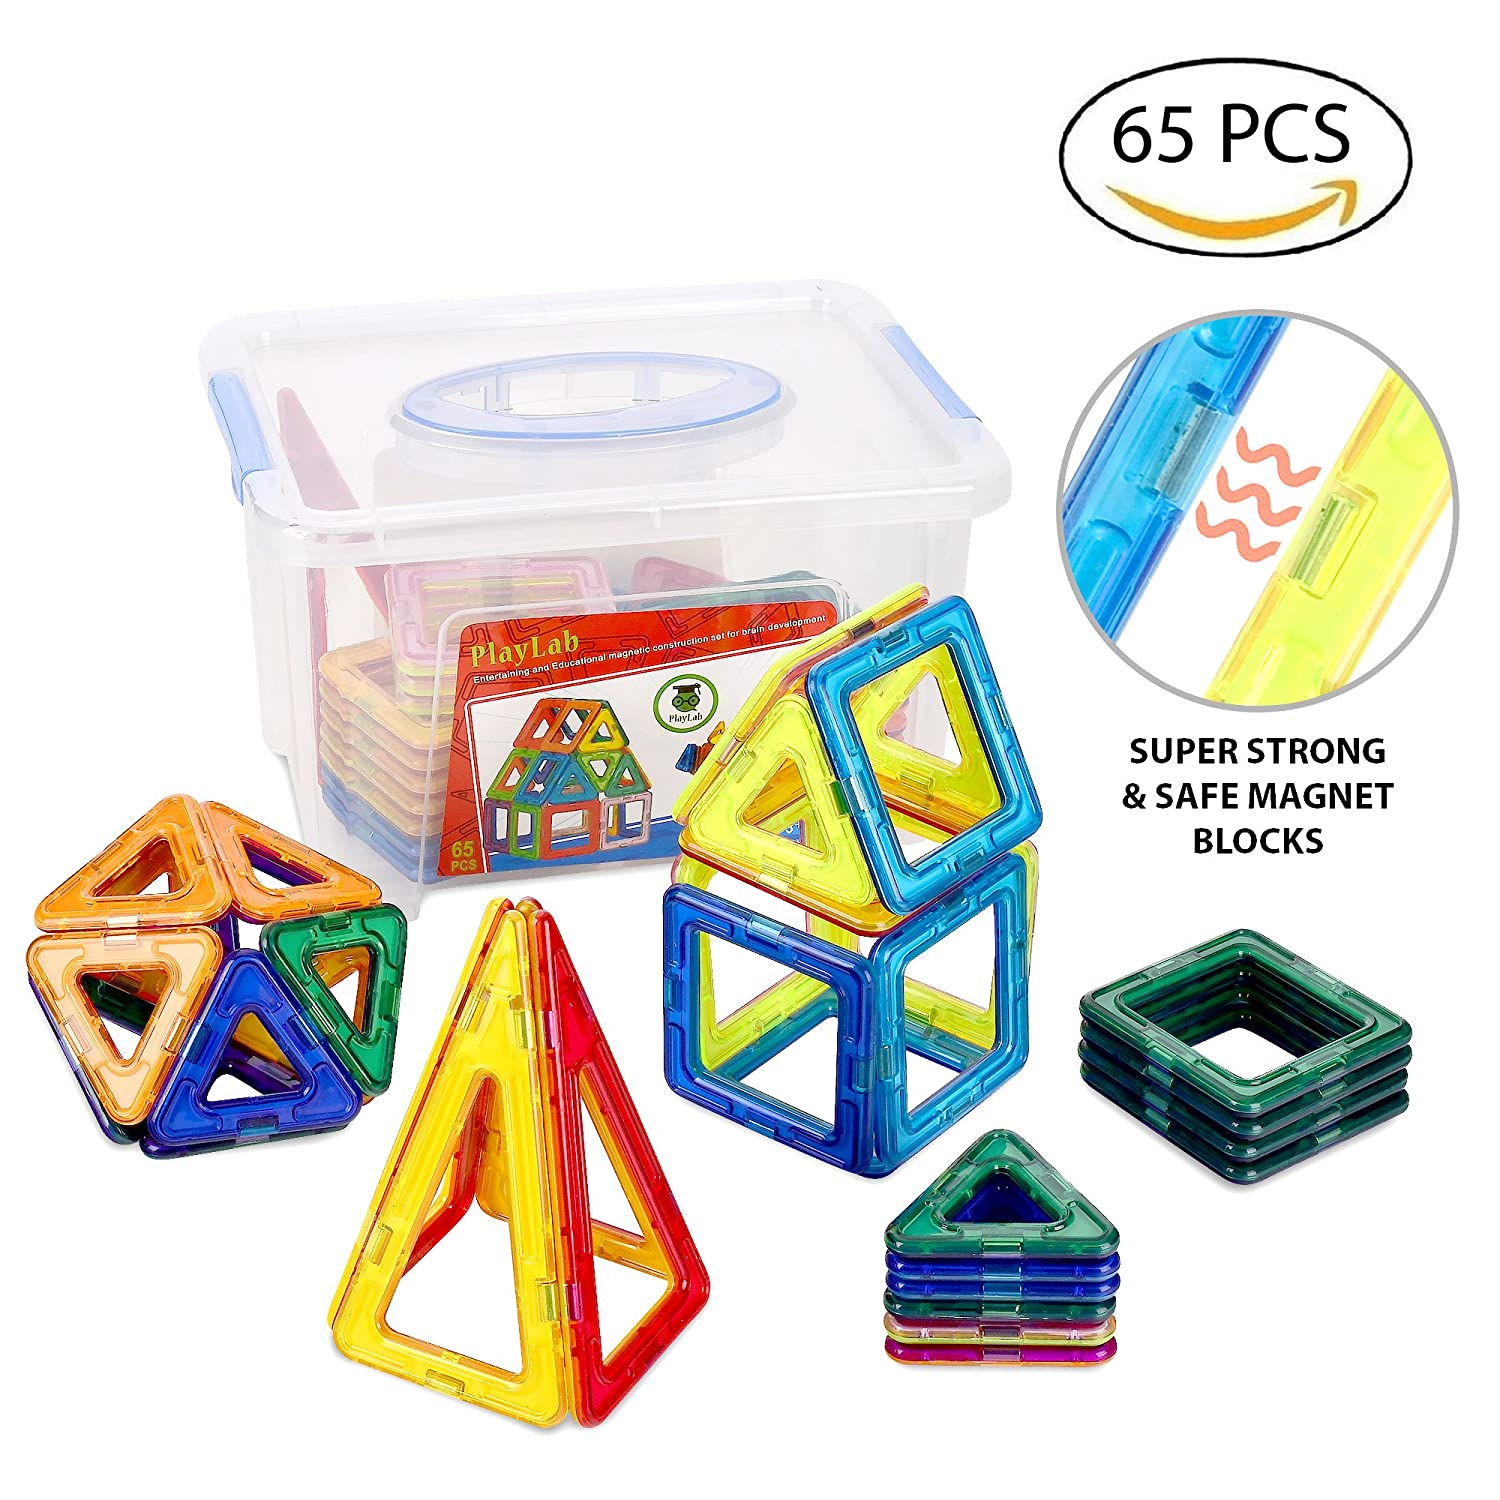 Magnetic Building Tiles for Kids   Stackable Magnetic Construction Building Blocks   Set of 65 Colorful Pieces with Storage Box Review